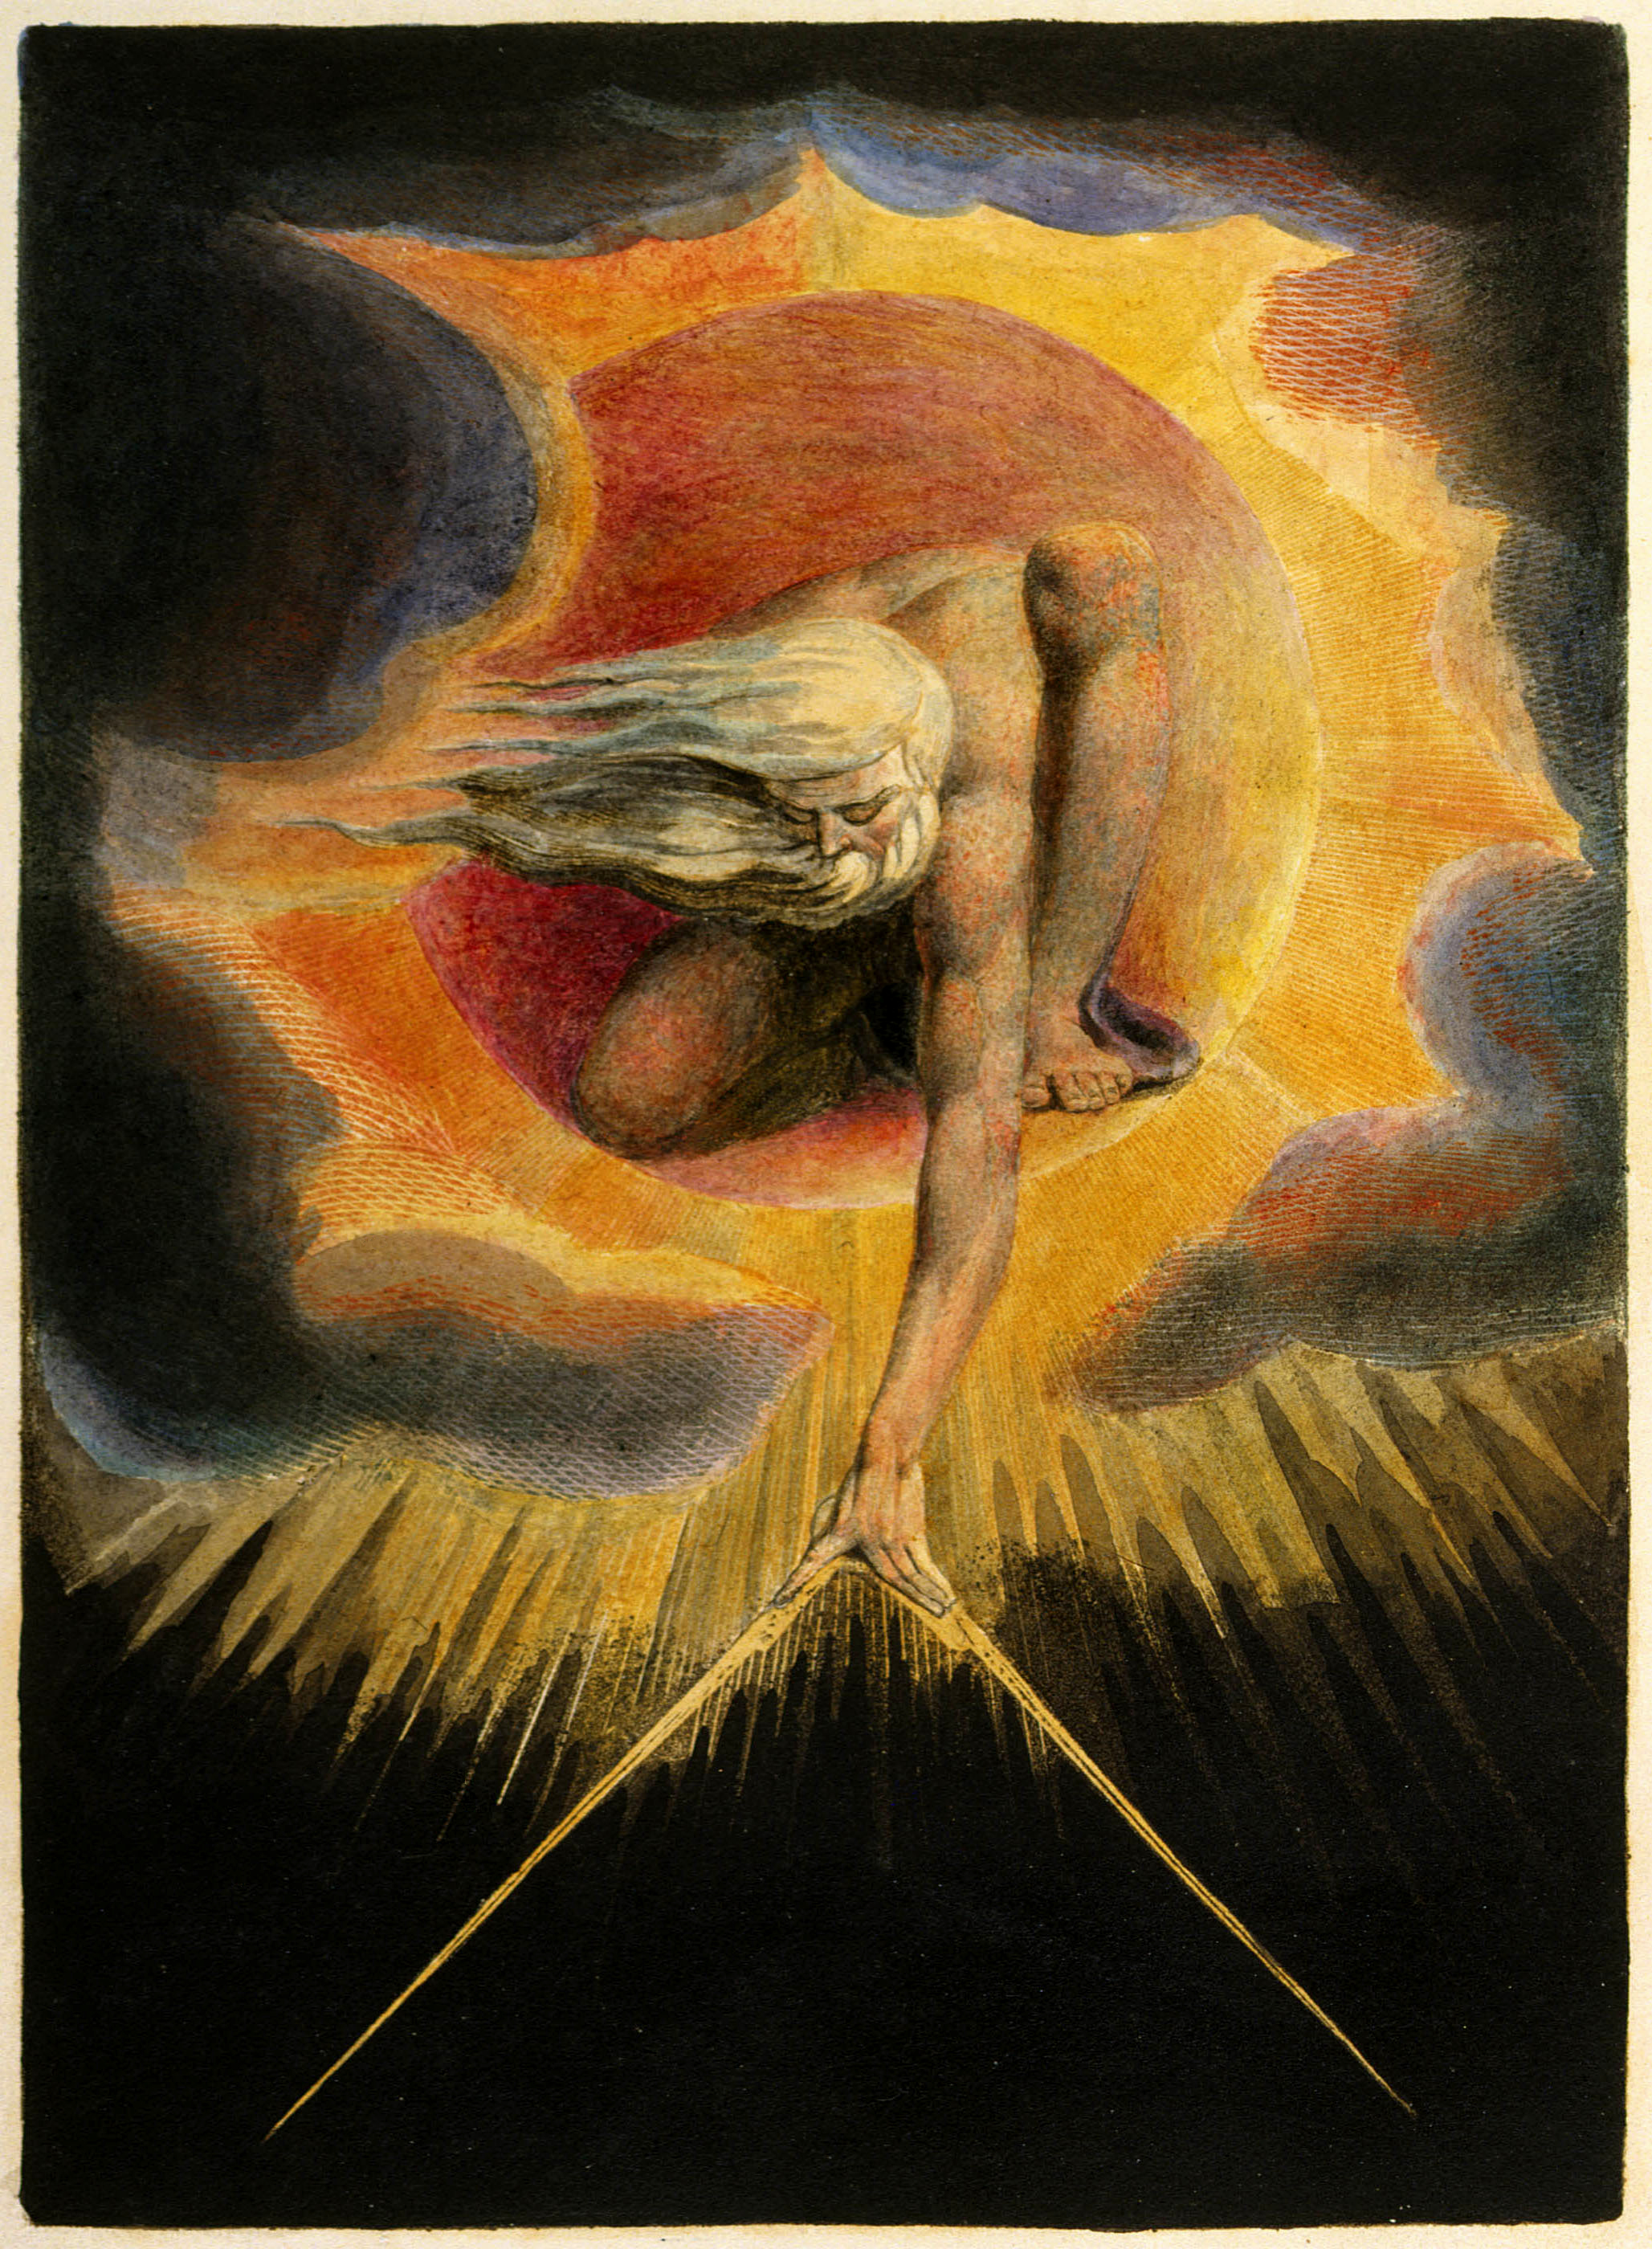 William Blake,  L'Ancien des jours , 1794, British Museum, Londres